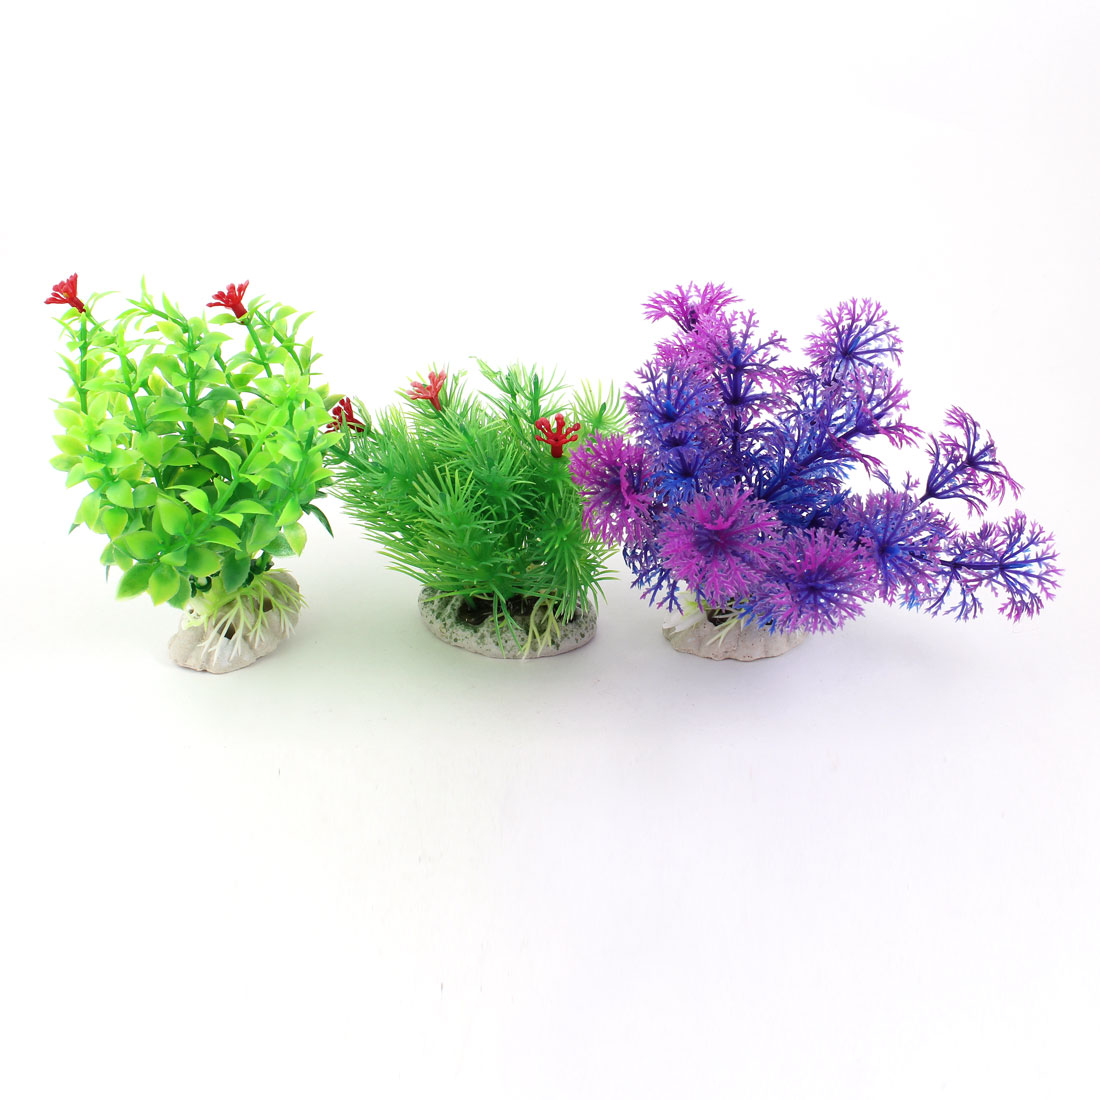 3 Pcs Green Fuchsia Blue Artificial Fish Tank Aquarium Plants w Ceramic Base